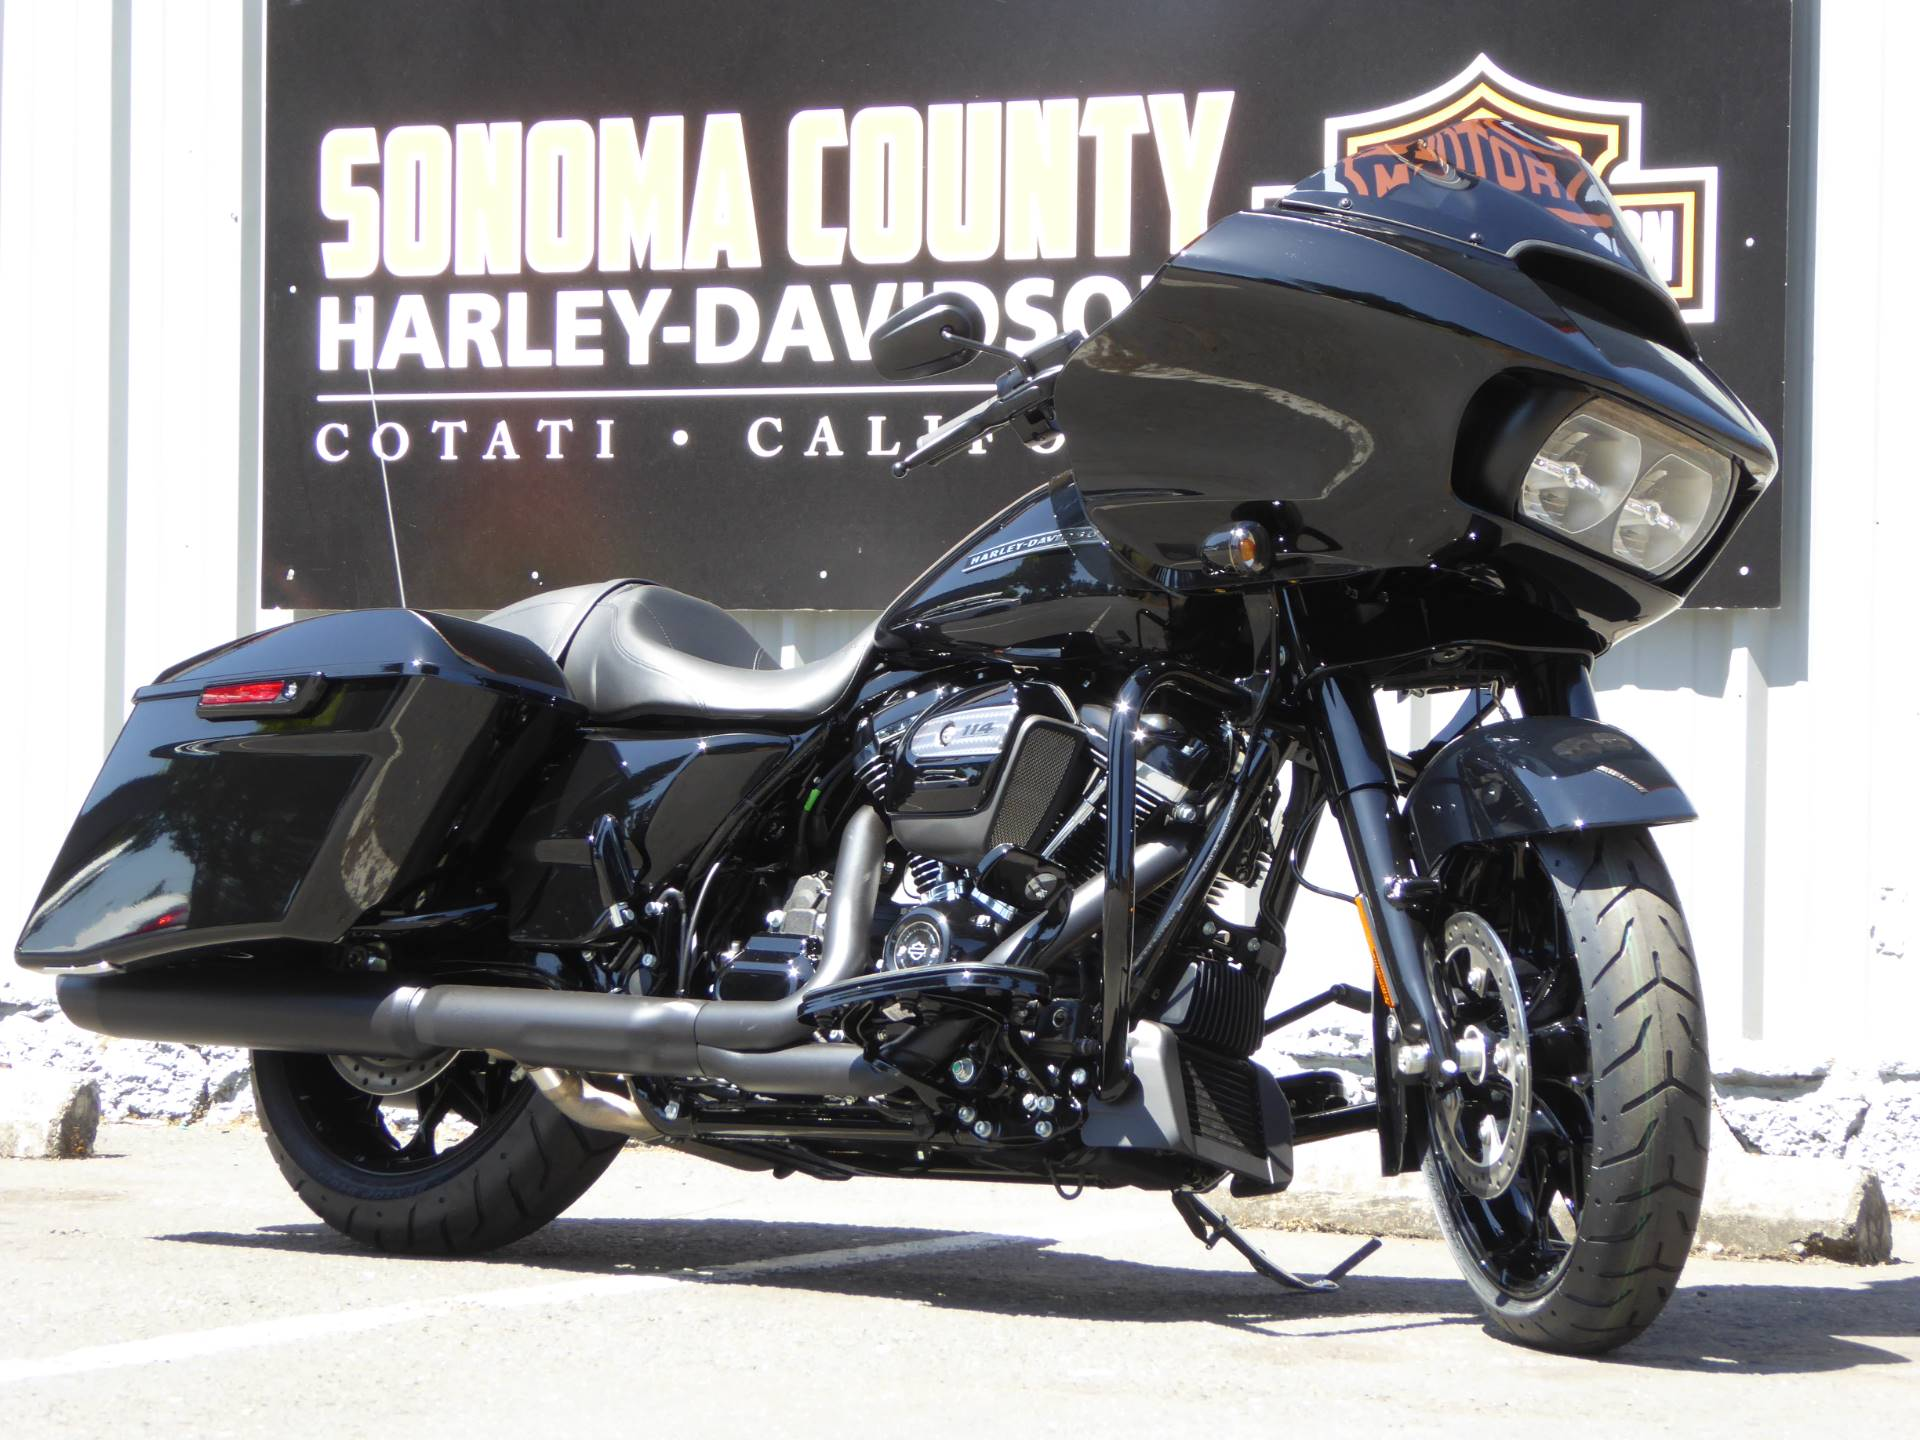 2020 Harley-Davidson Road Glide Special in Cotati, California - Photo 5